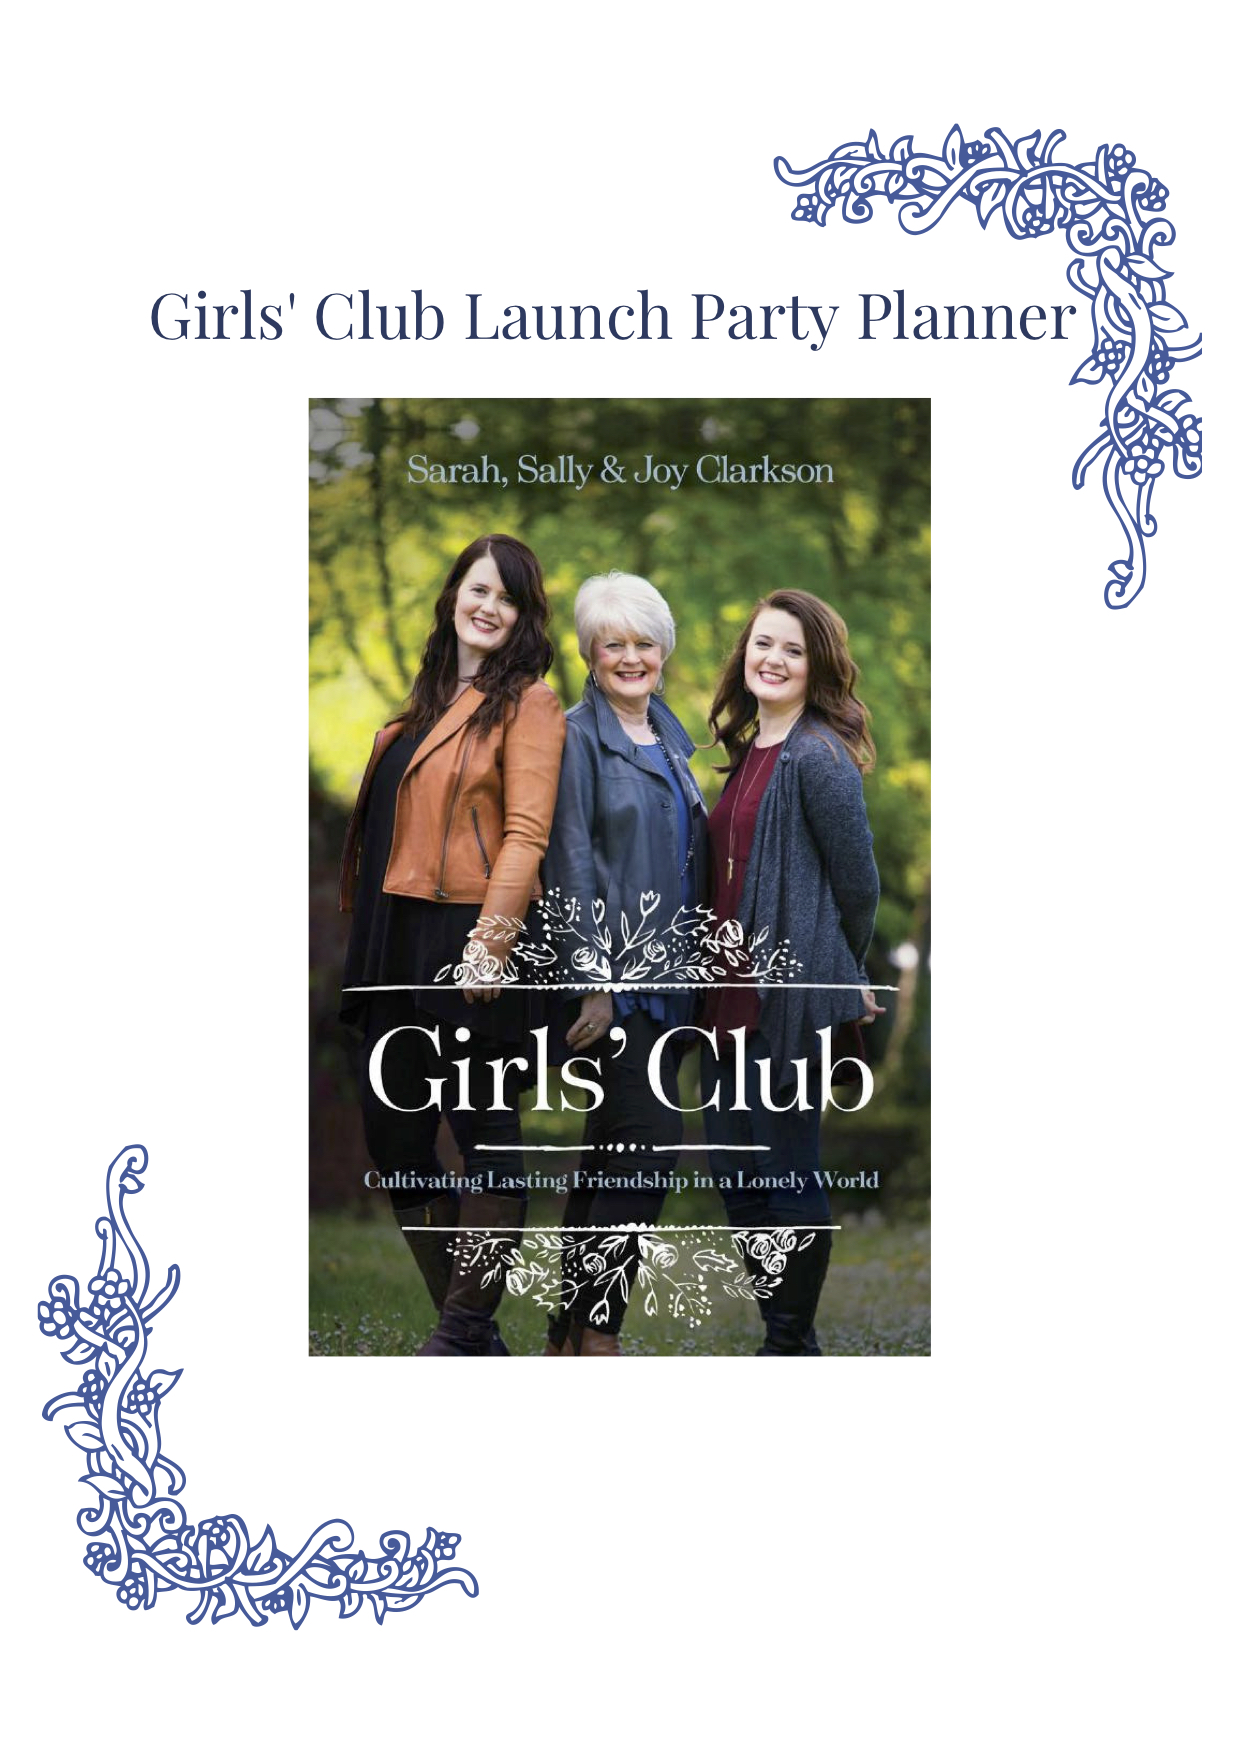 Girls' Club Launch Party Planner Page 1.jpg